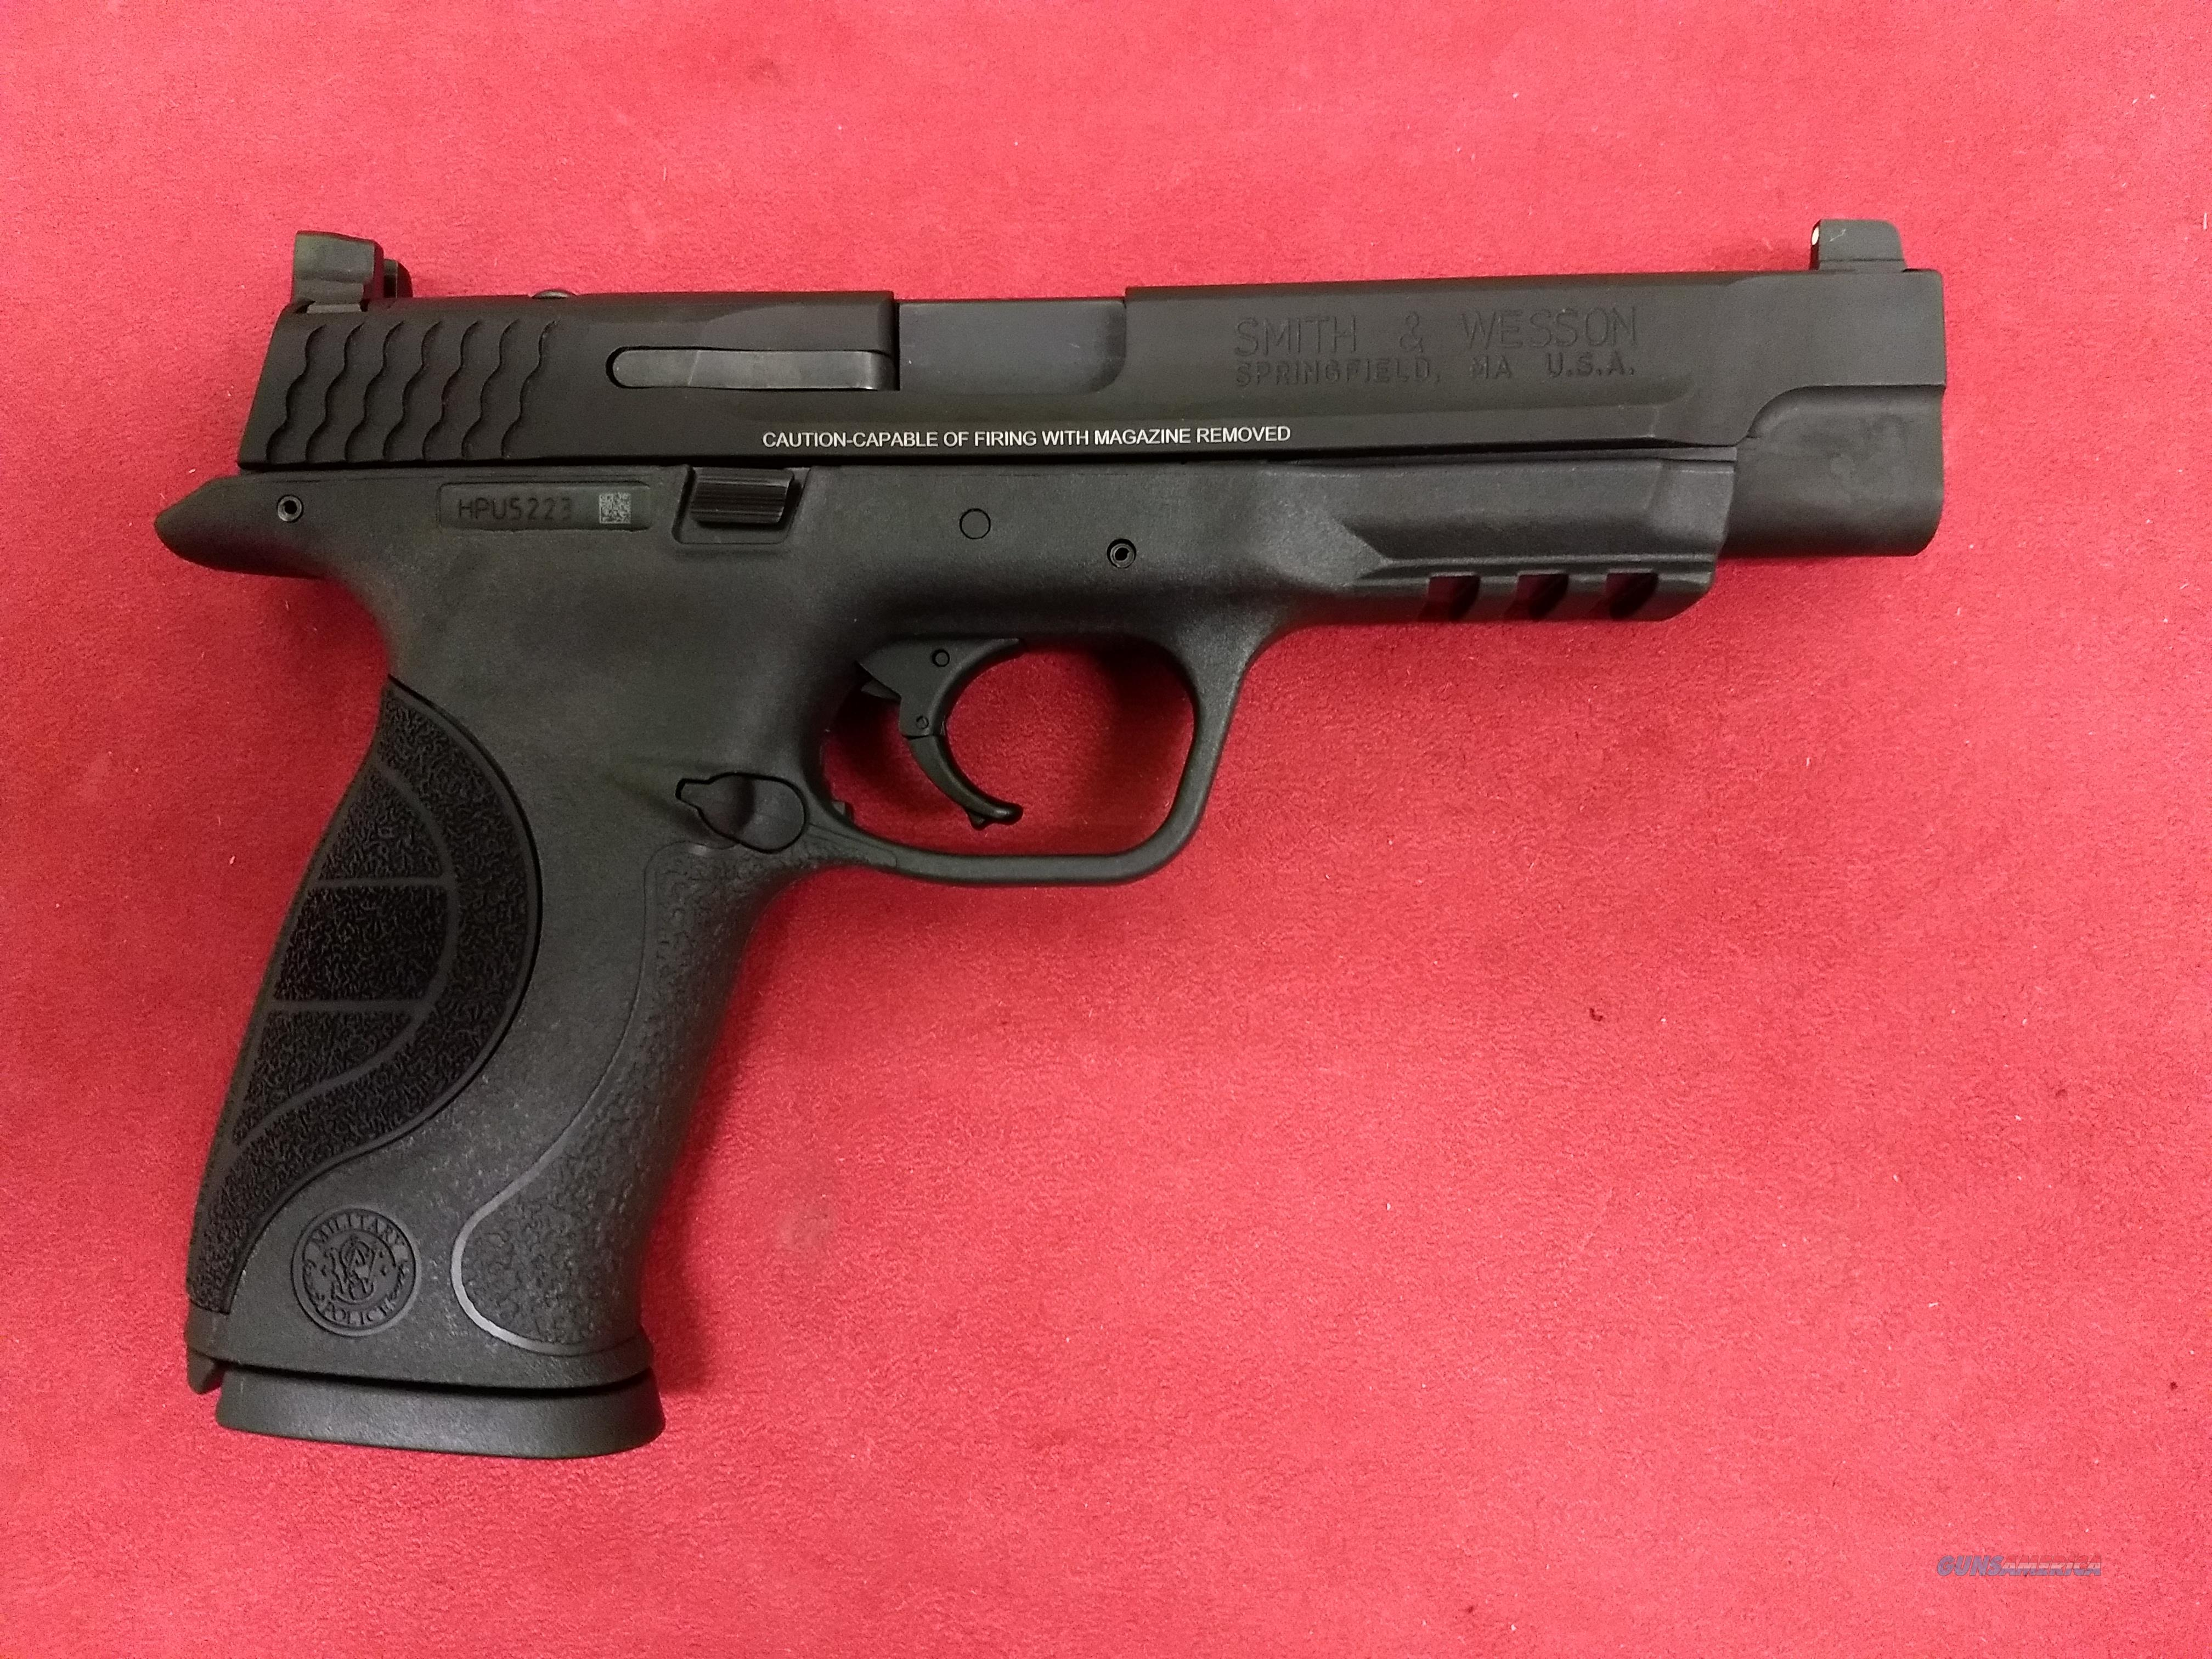 S&W M&P40 Long Slide, C.O.R.E. Pro Series, NIB  Guns > Pistols > Smith & Wesson Pistols - Autos > Polymer Frame